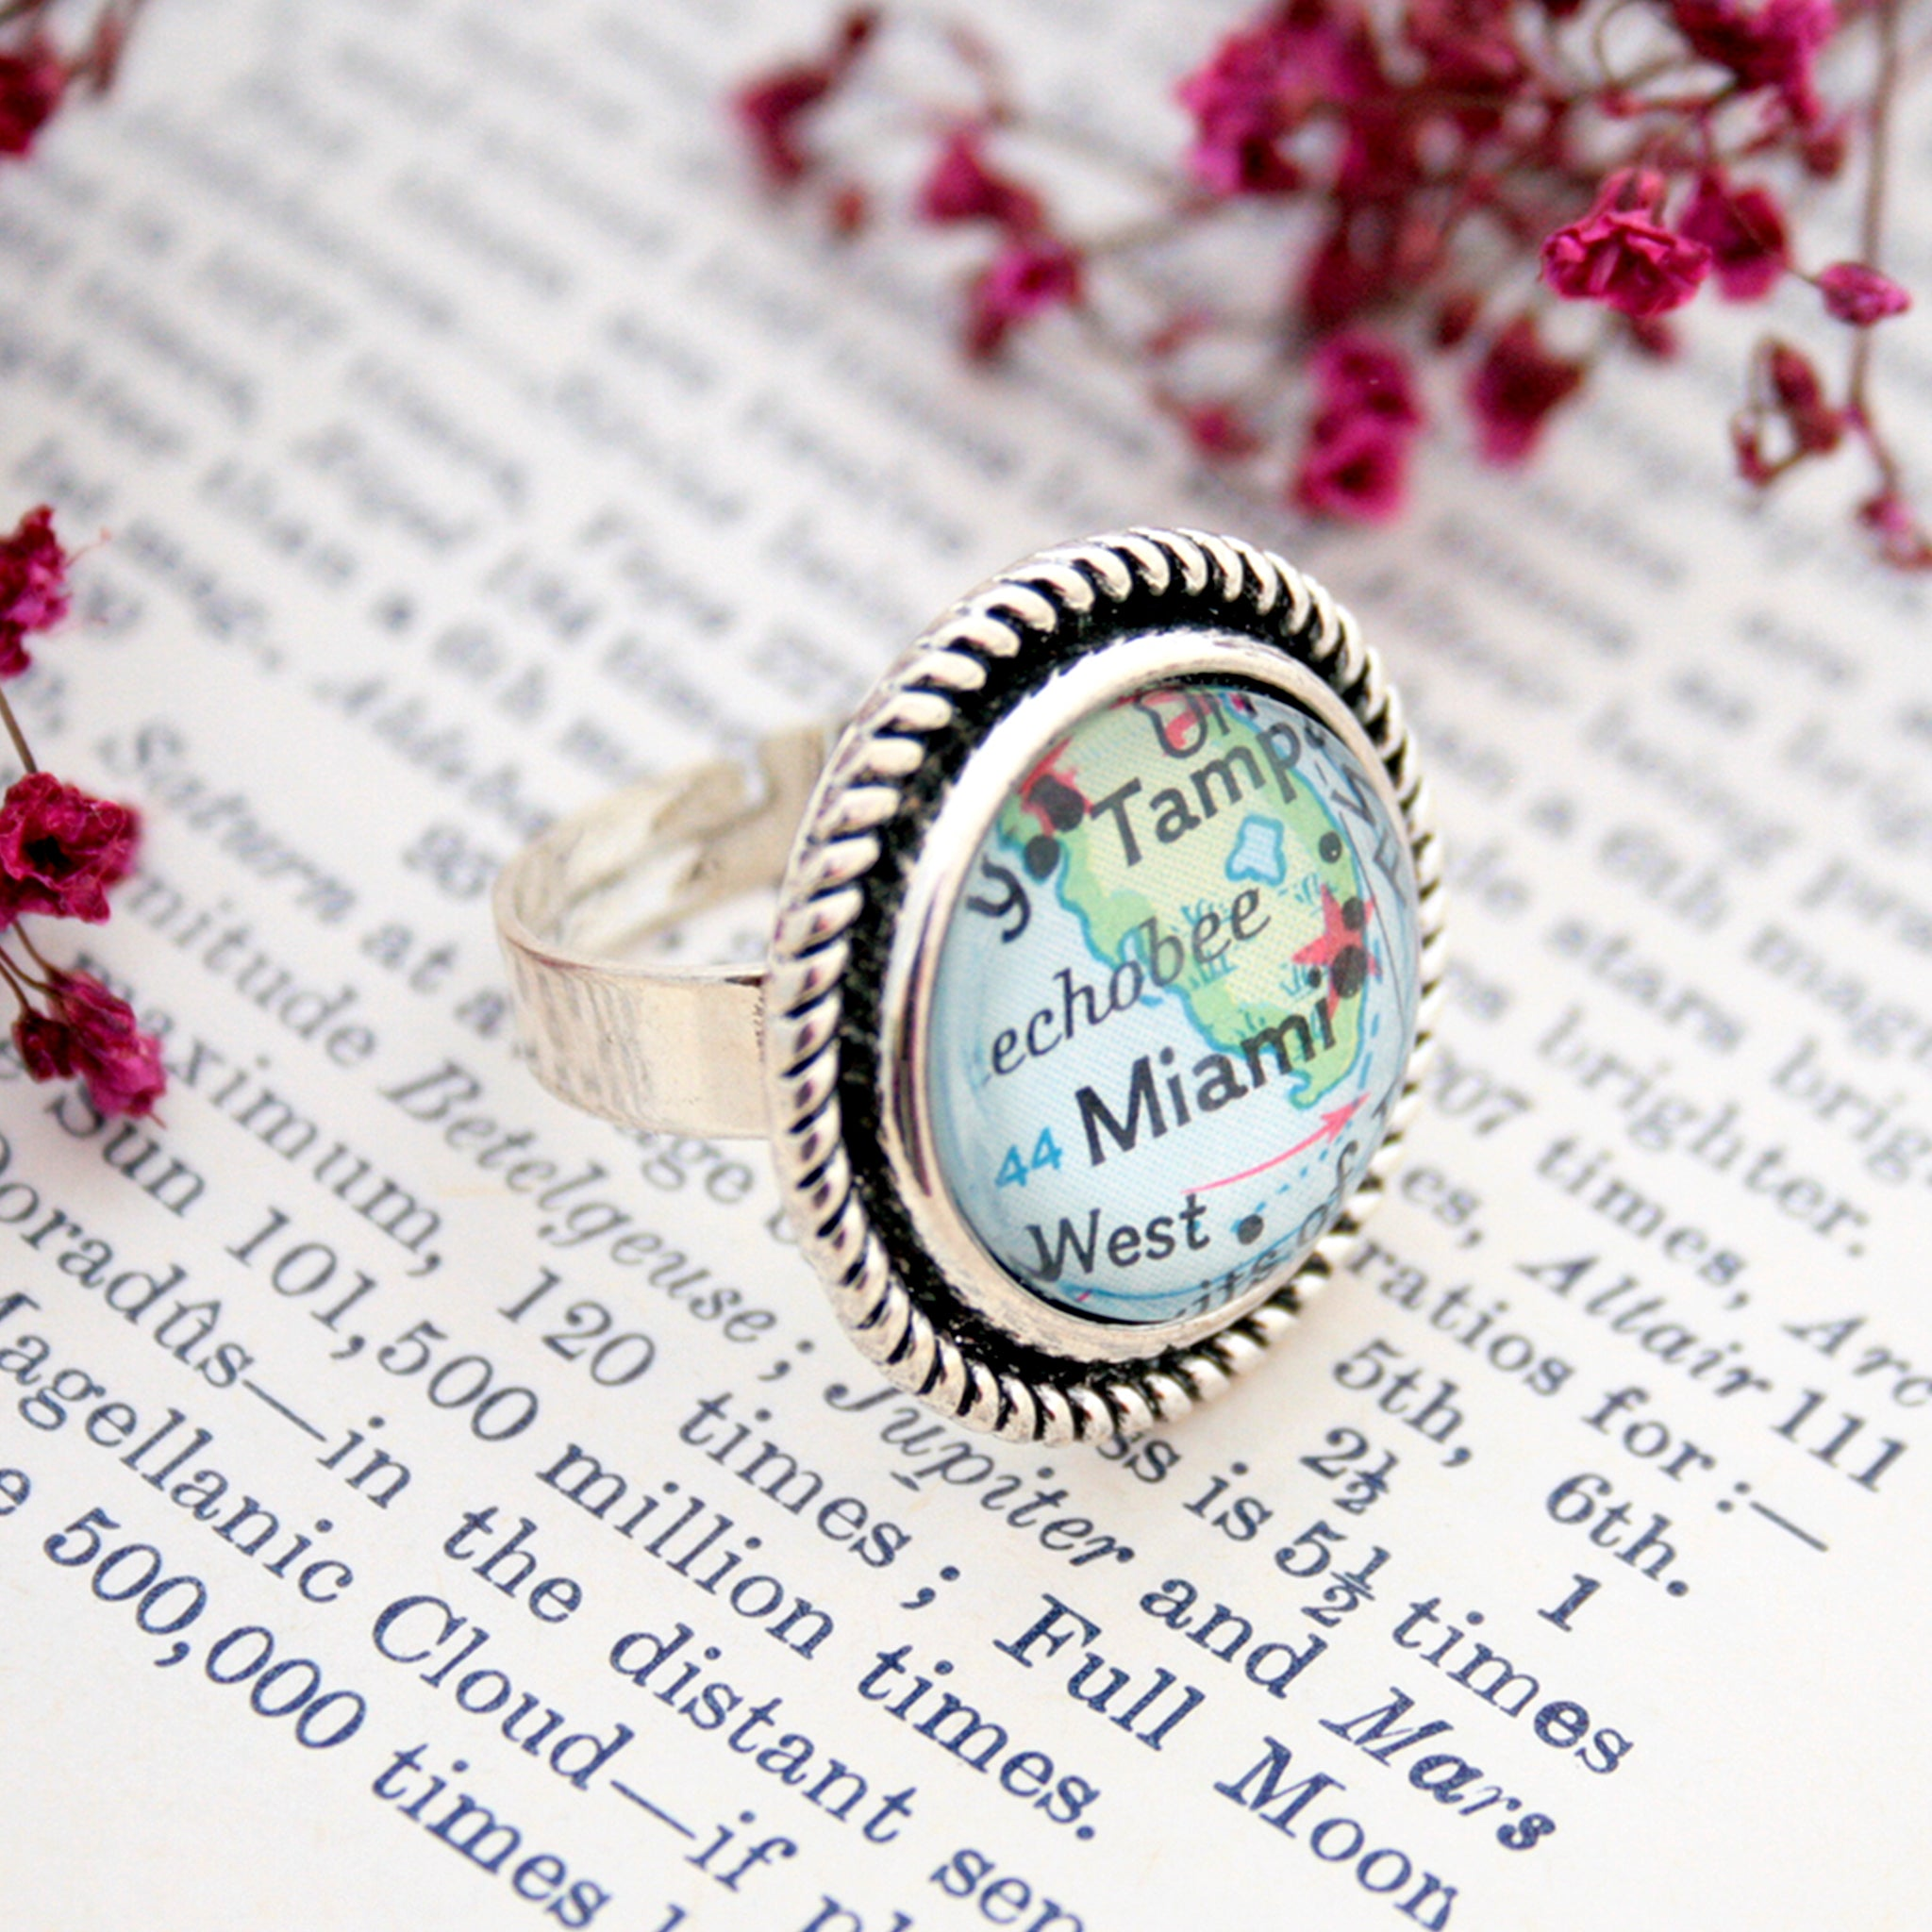 Silver tone ring with rope pattern featuring map of Miami